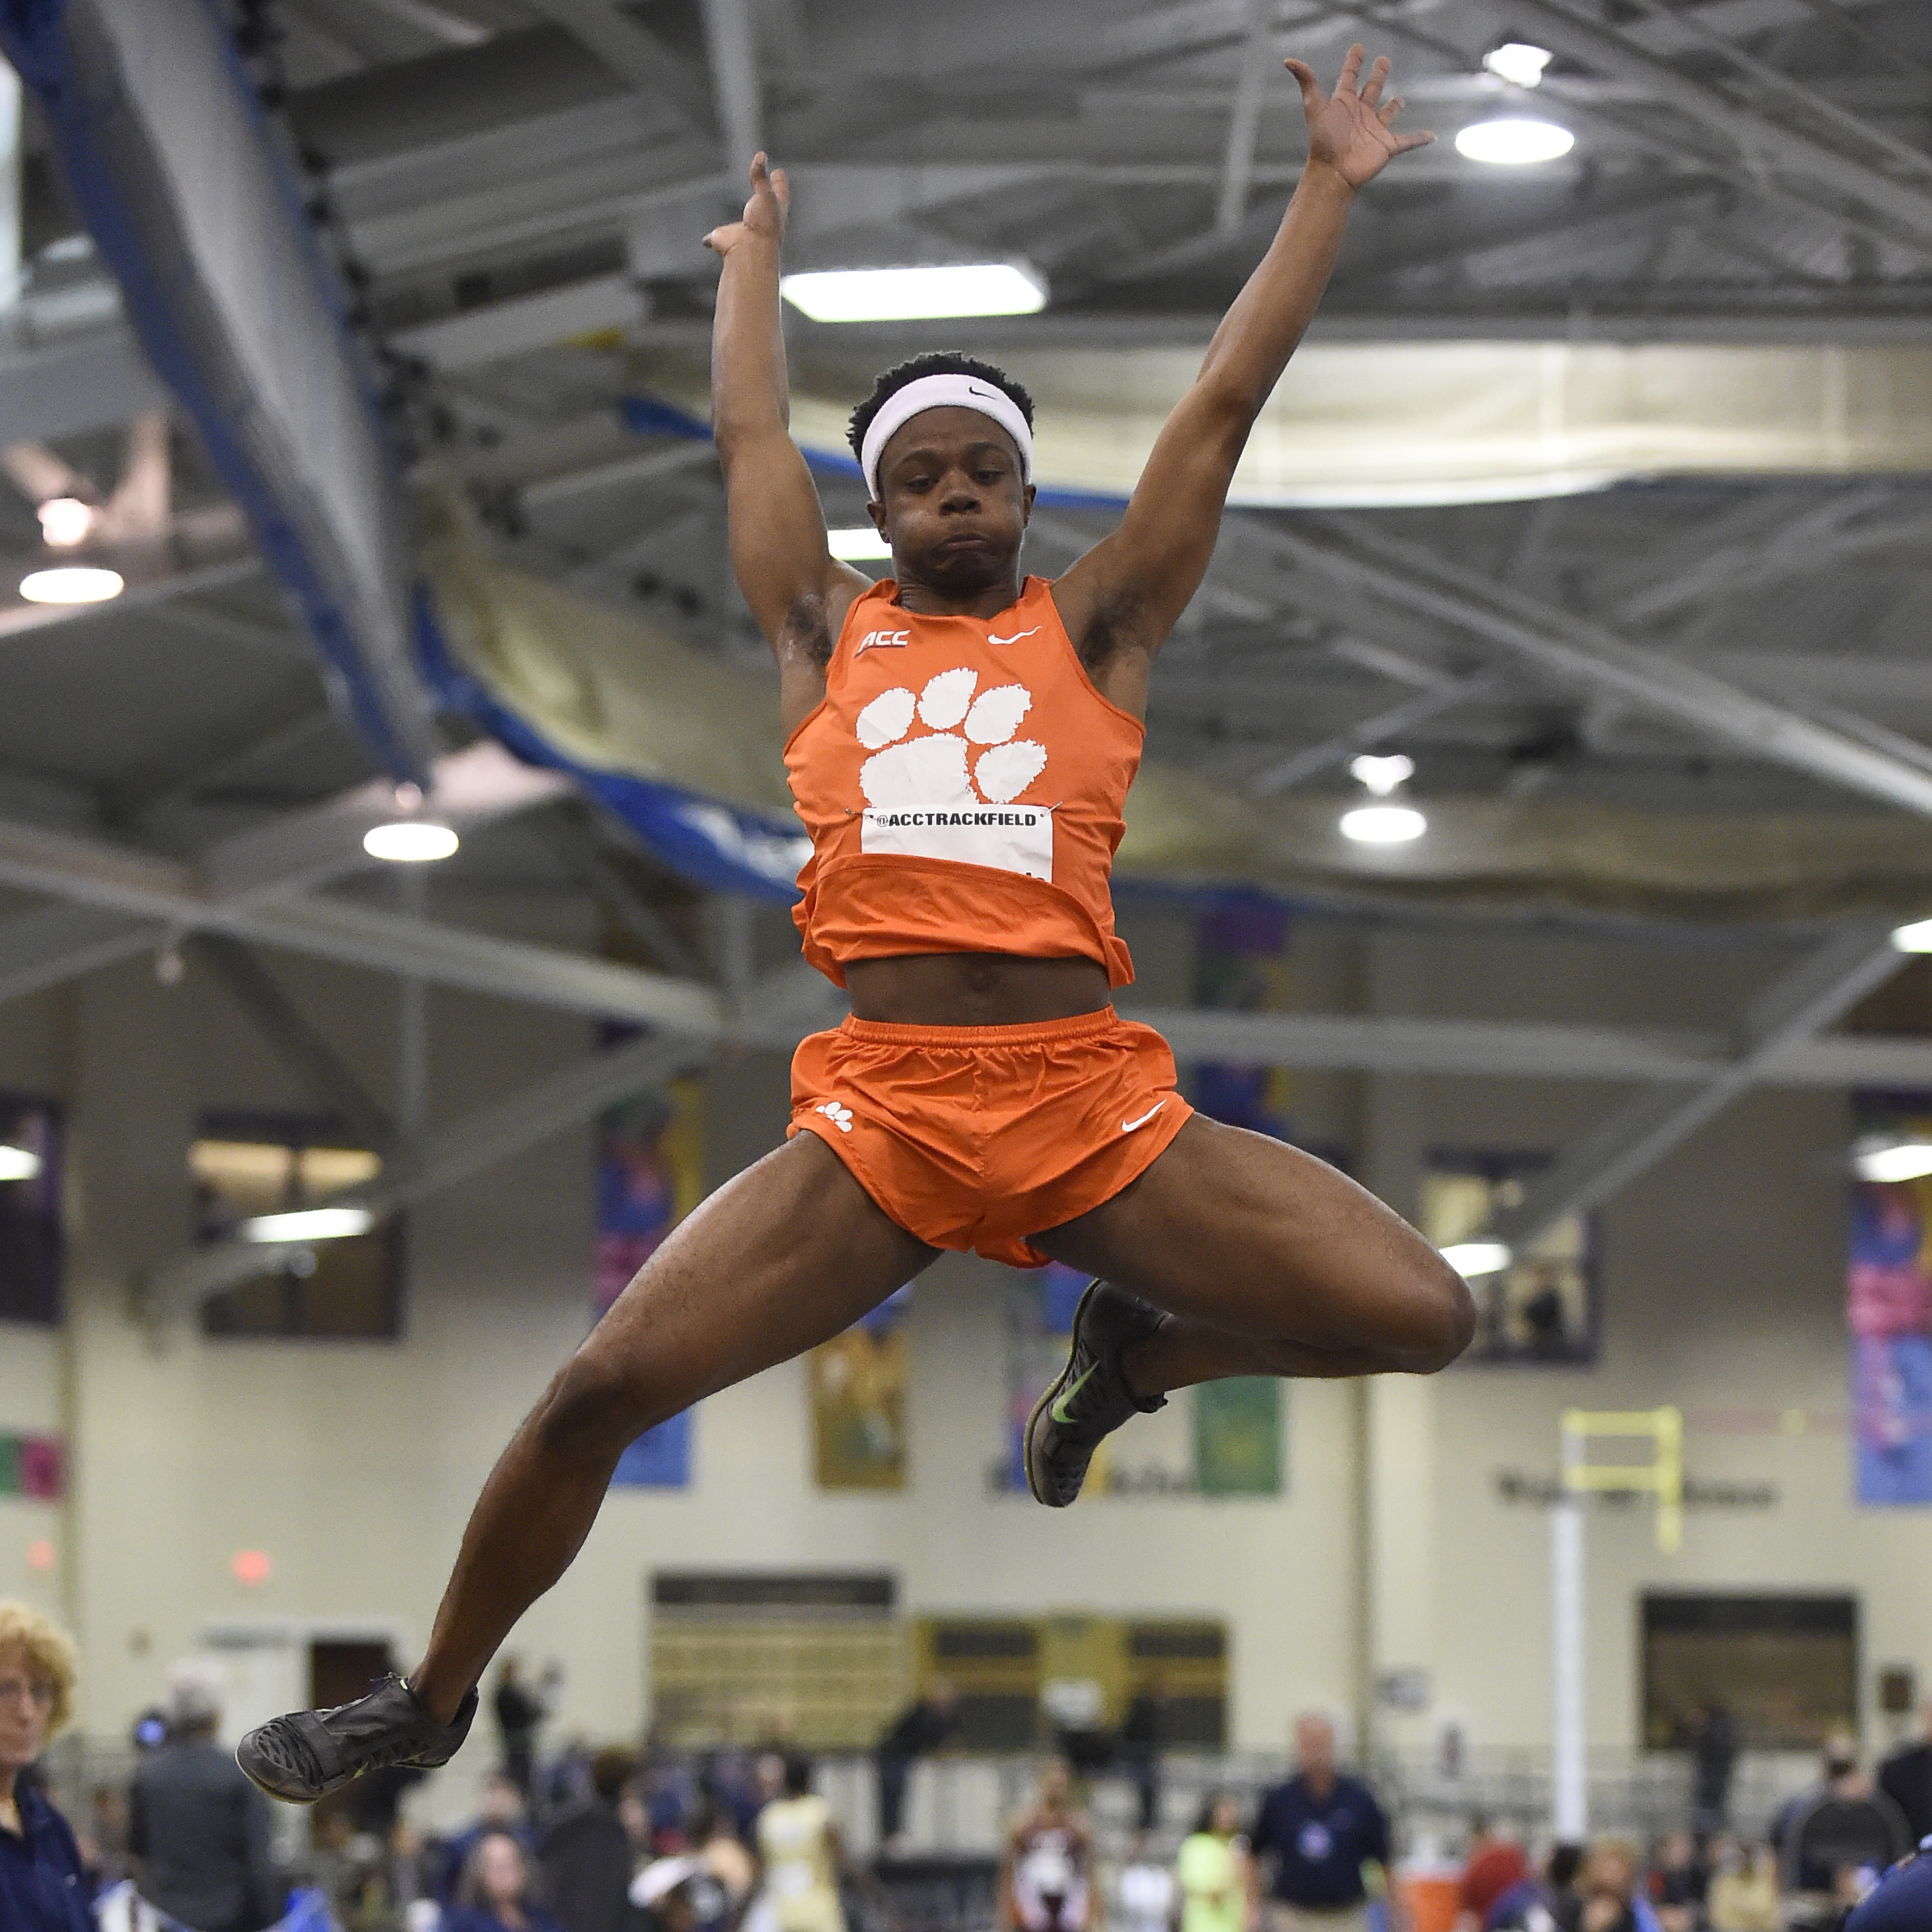 McBride Sets School Mark with Fifth Place Finish in Long Jump at NCAA Finals